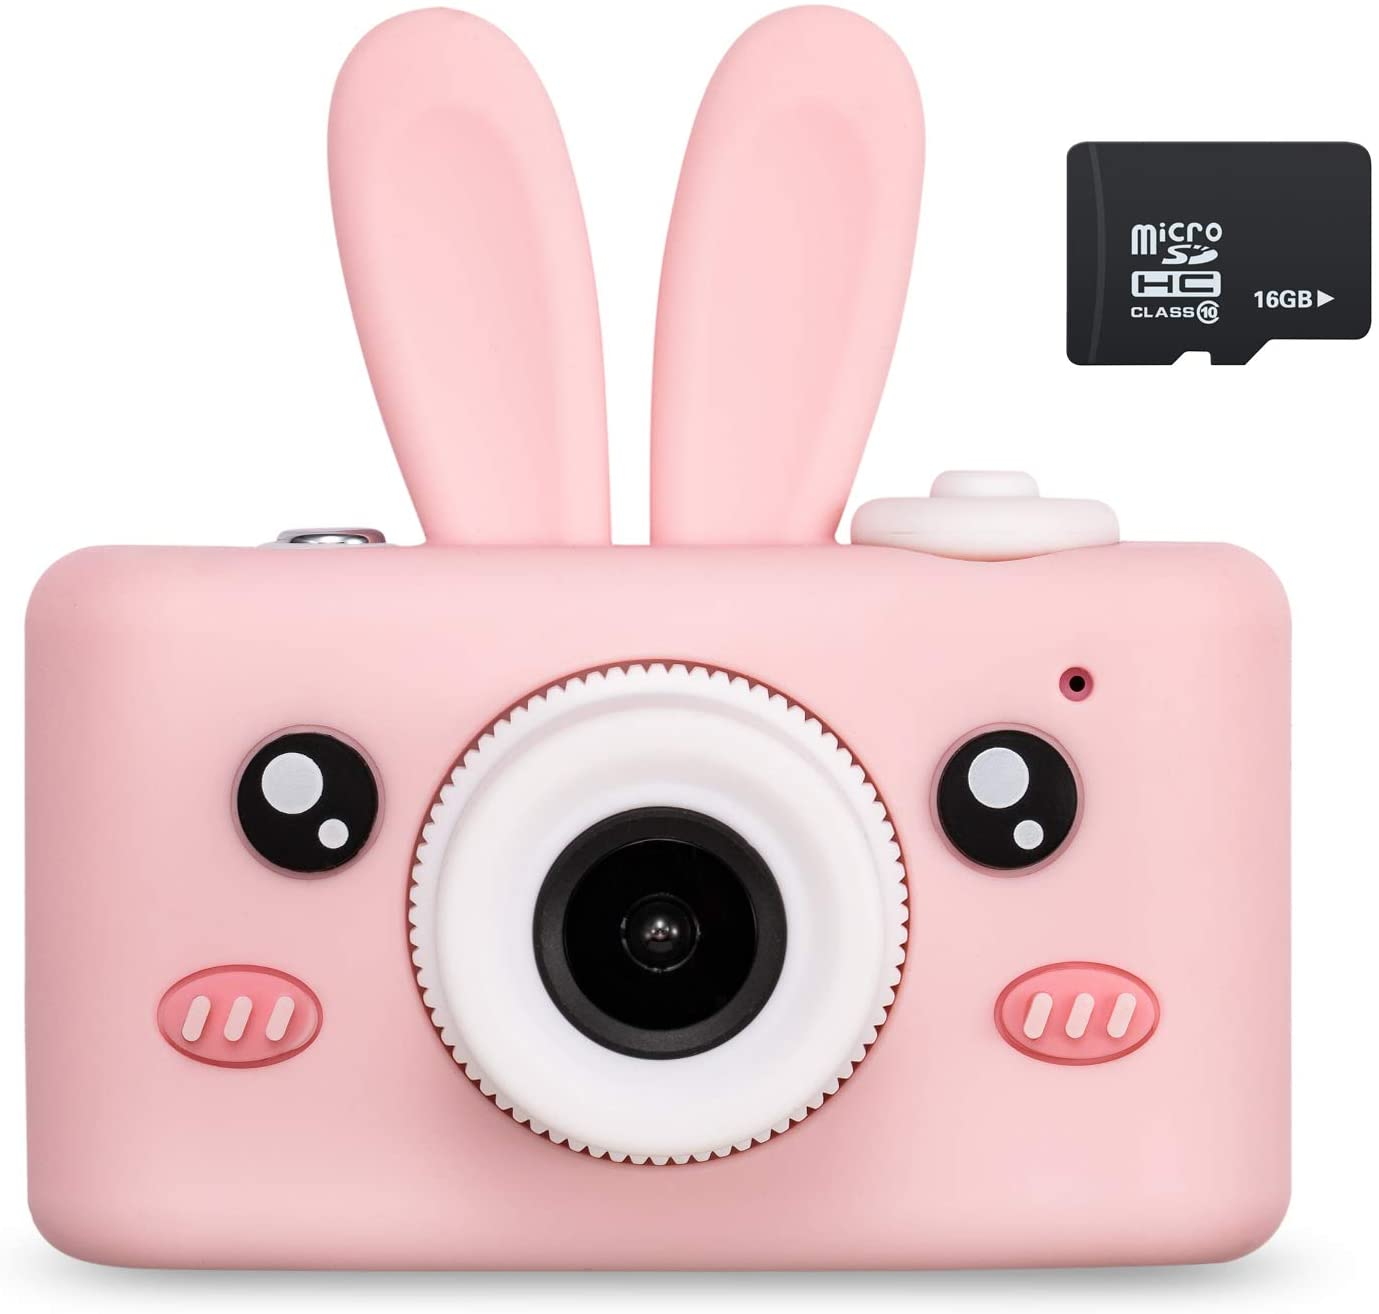 Rechargeable Digital Cameras With Bunny Cover